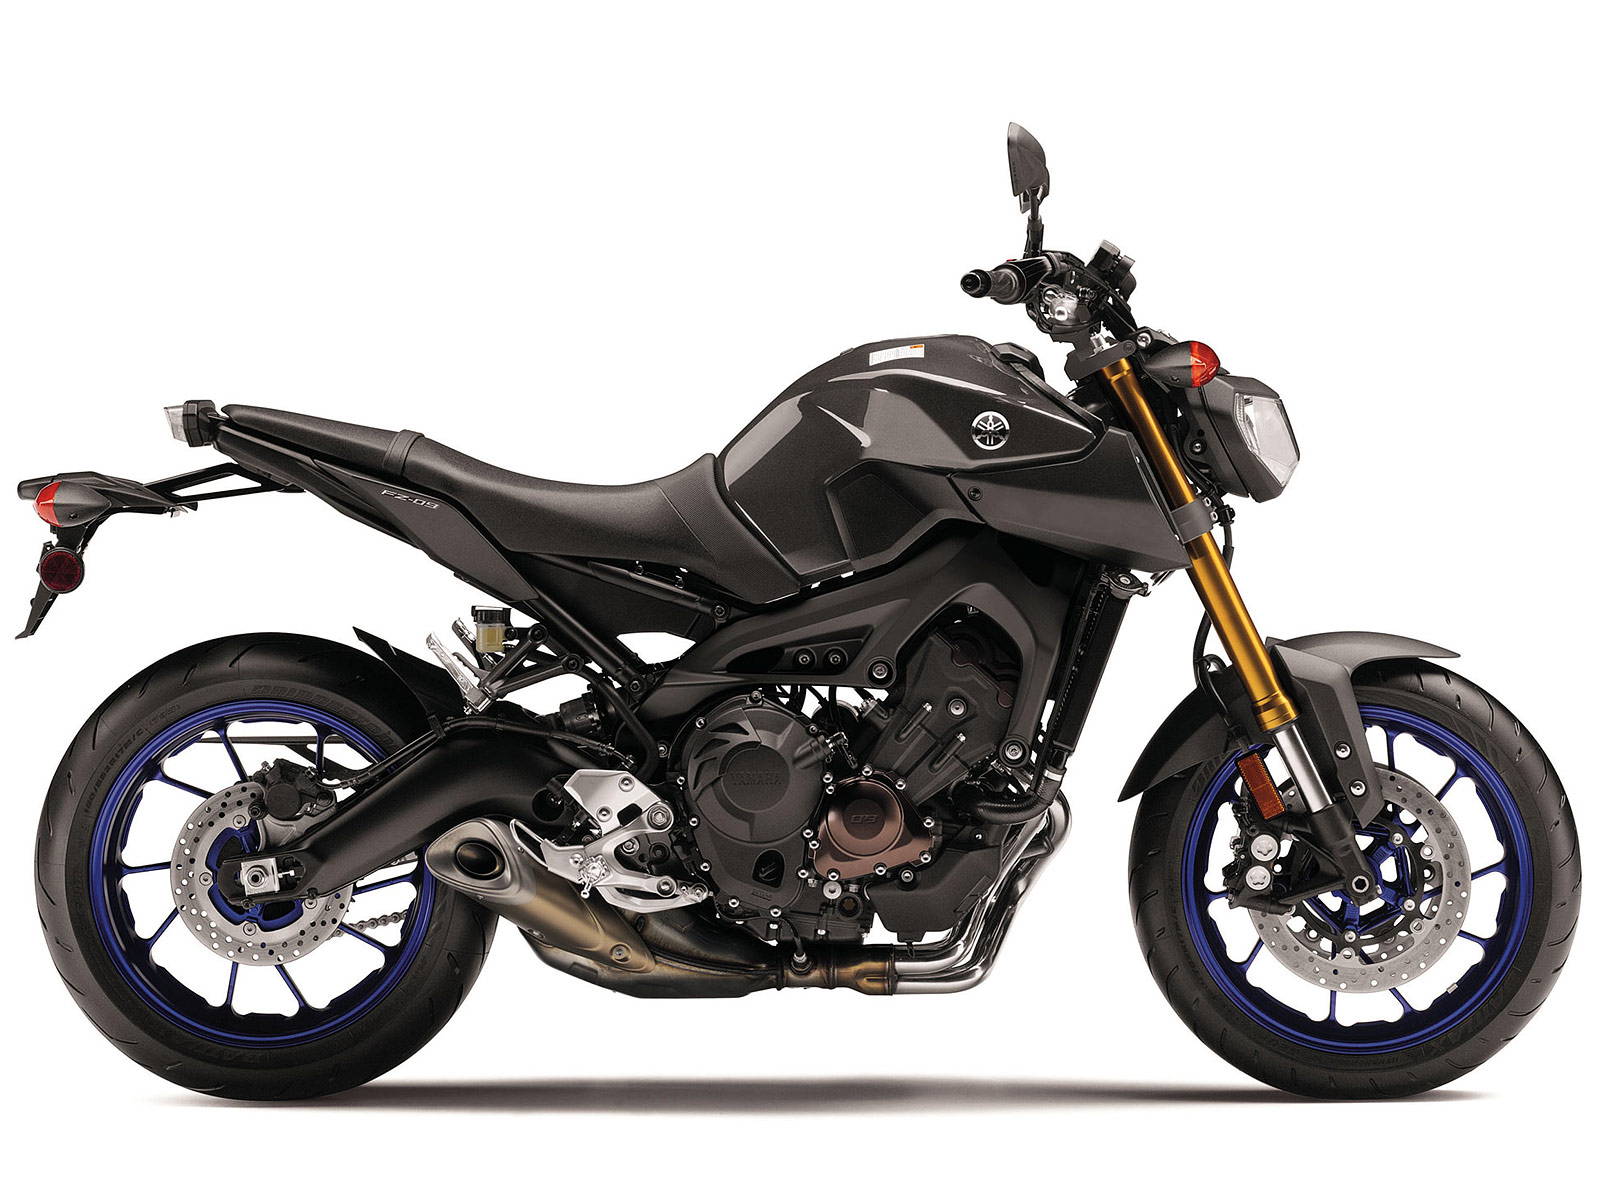 2014 fz 09 yamaha insurance information pictures specs